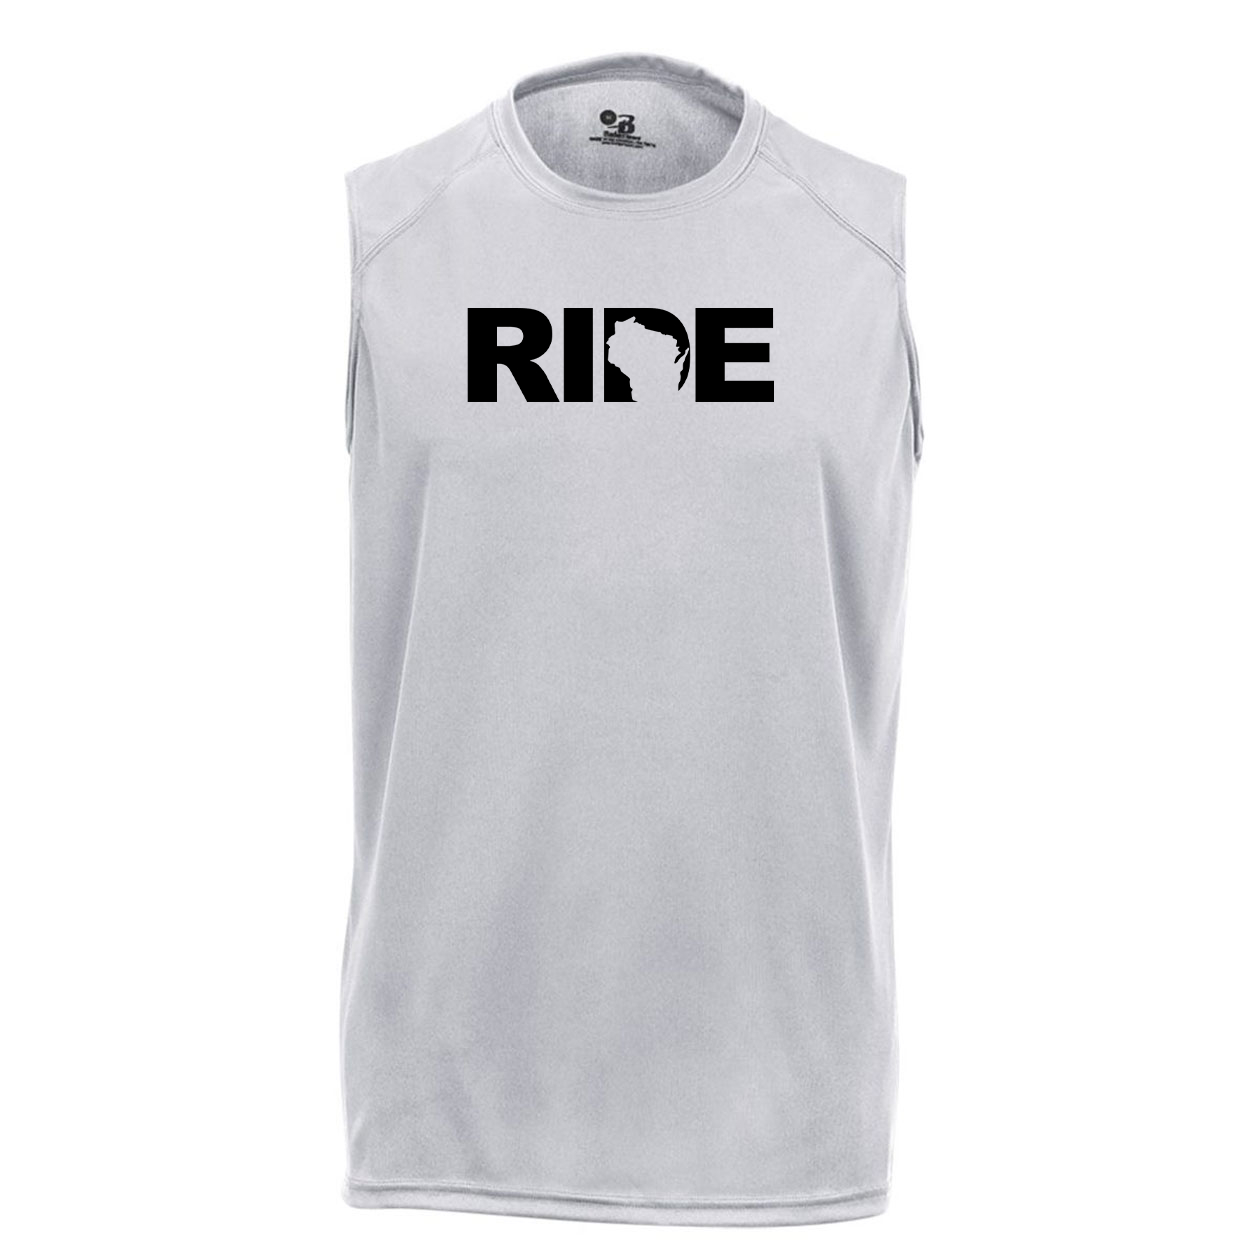 Ride Wisconsin Classic Unisex Performance Sleeveless T-Shirt Silver Gray (Black Logo)